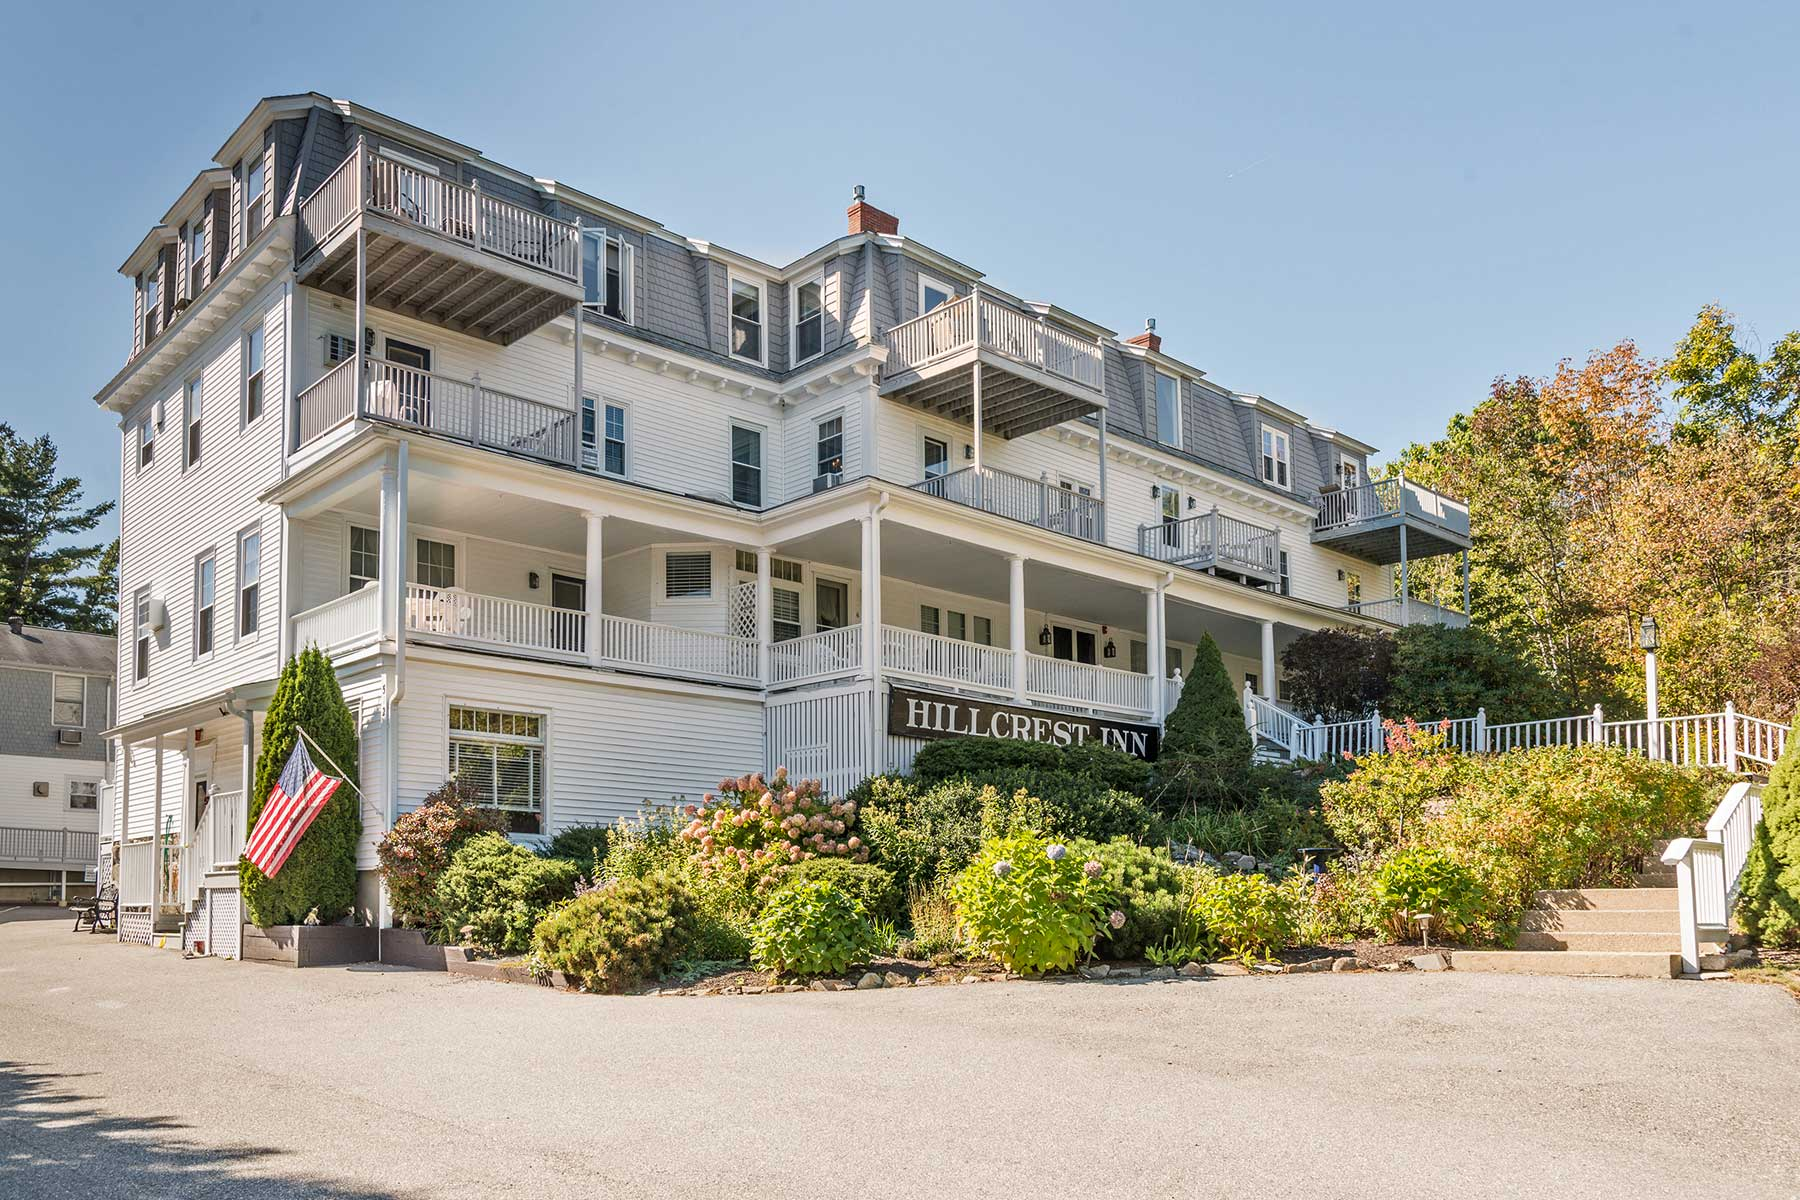 Condominium for Sale at Hillcrest Condo, Walk to Ogunquit Village 512 Shore Road Unit #17, Ogunquit, Maine 03907 United States